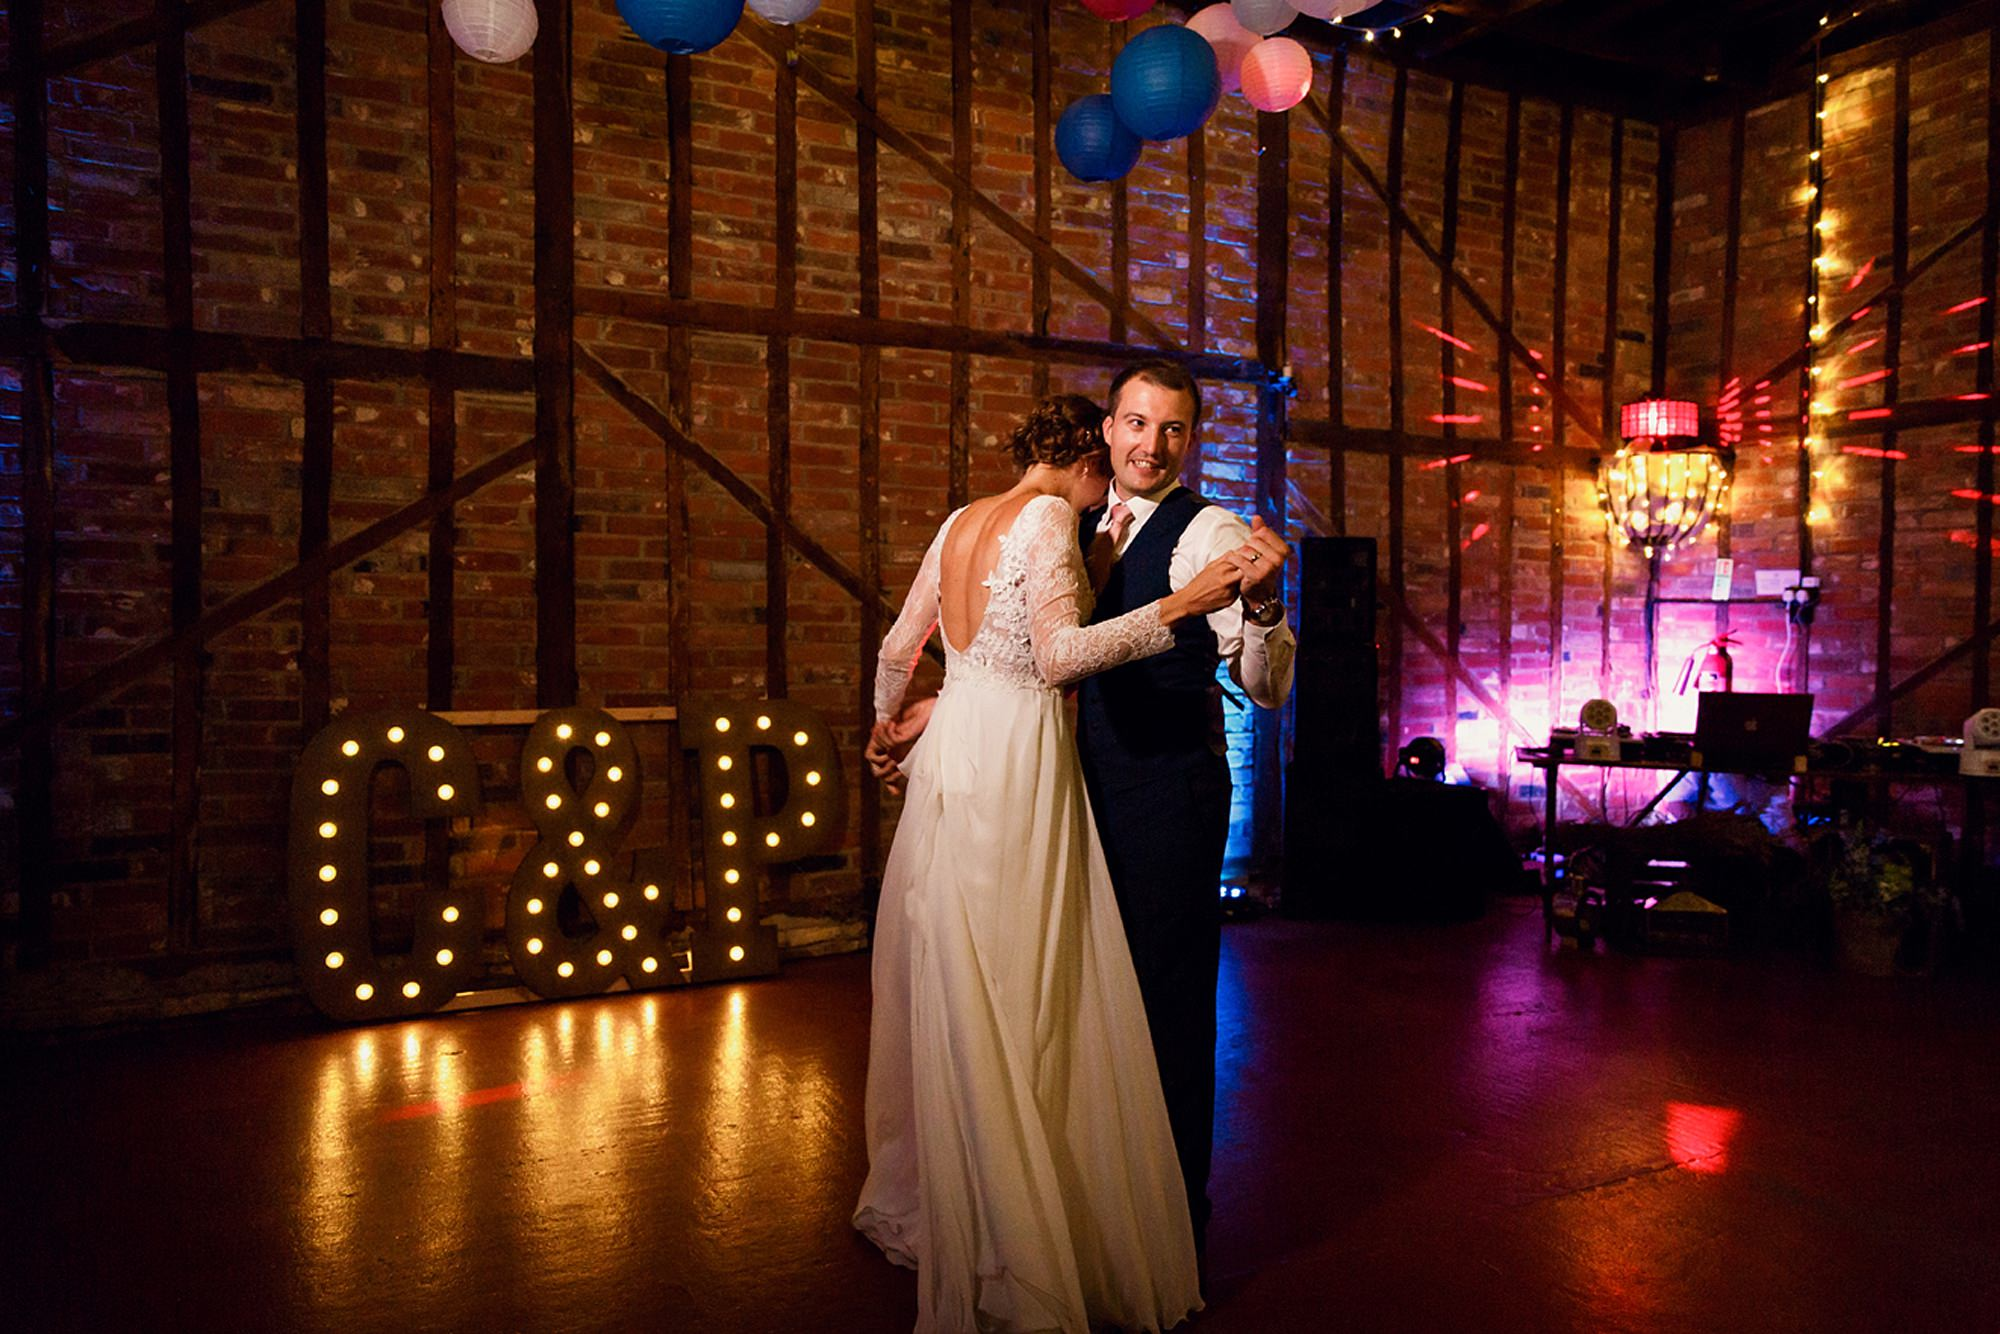 Marks Hall Estate wedding photography bride and groom first dance together